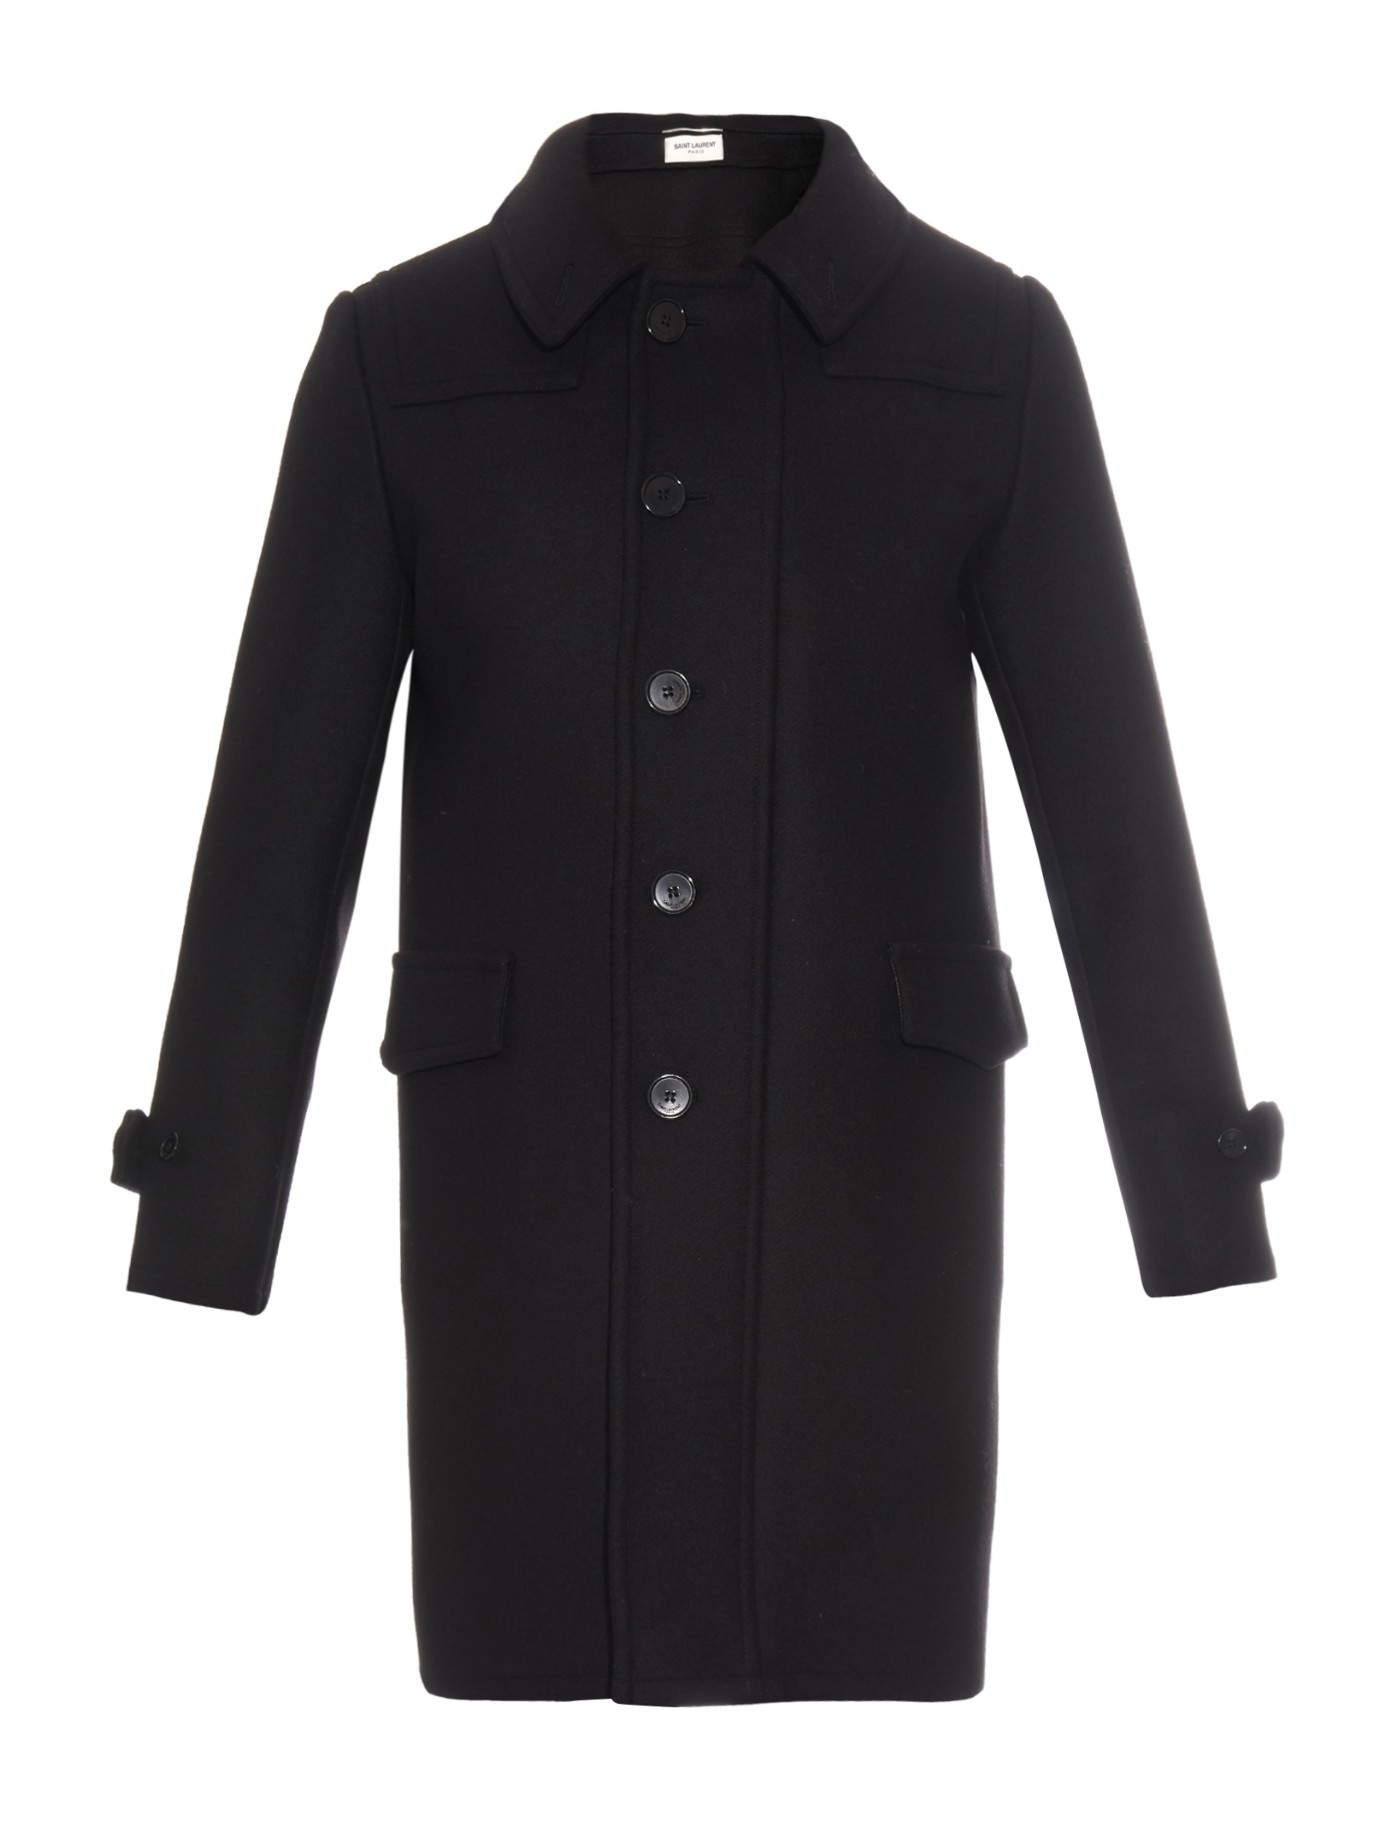 Saint laurent Wool Duffle Coat in Black for Men | Lyst